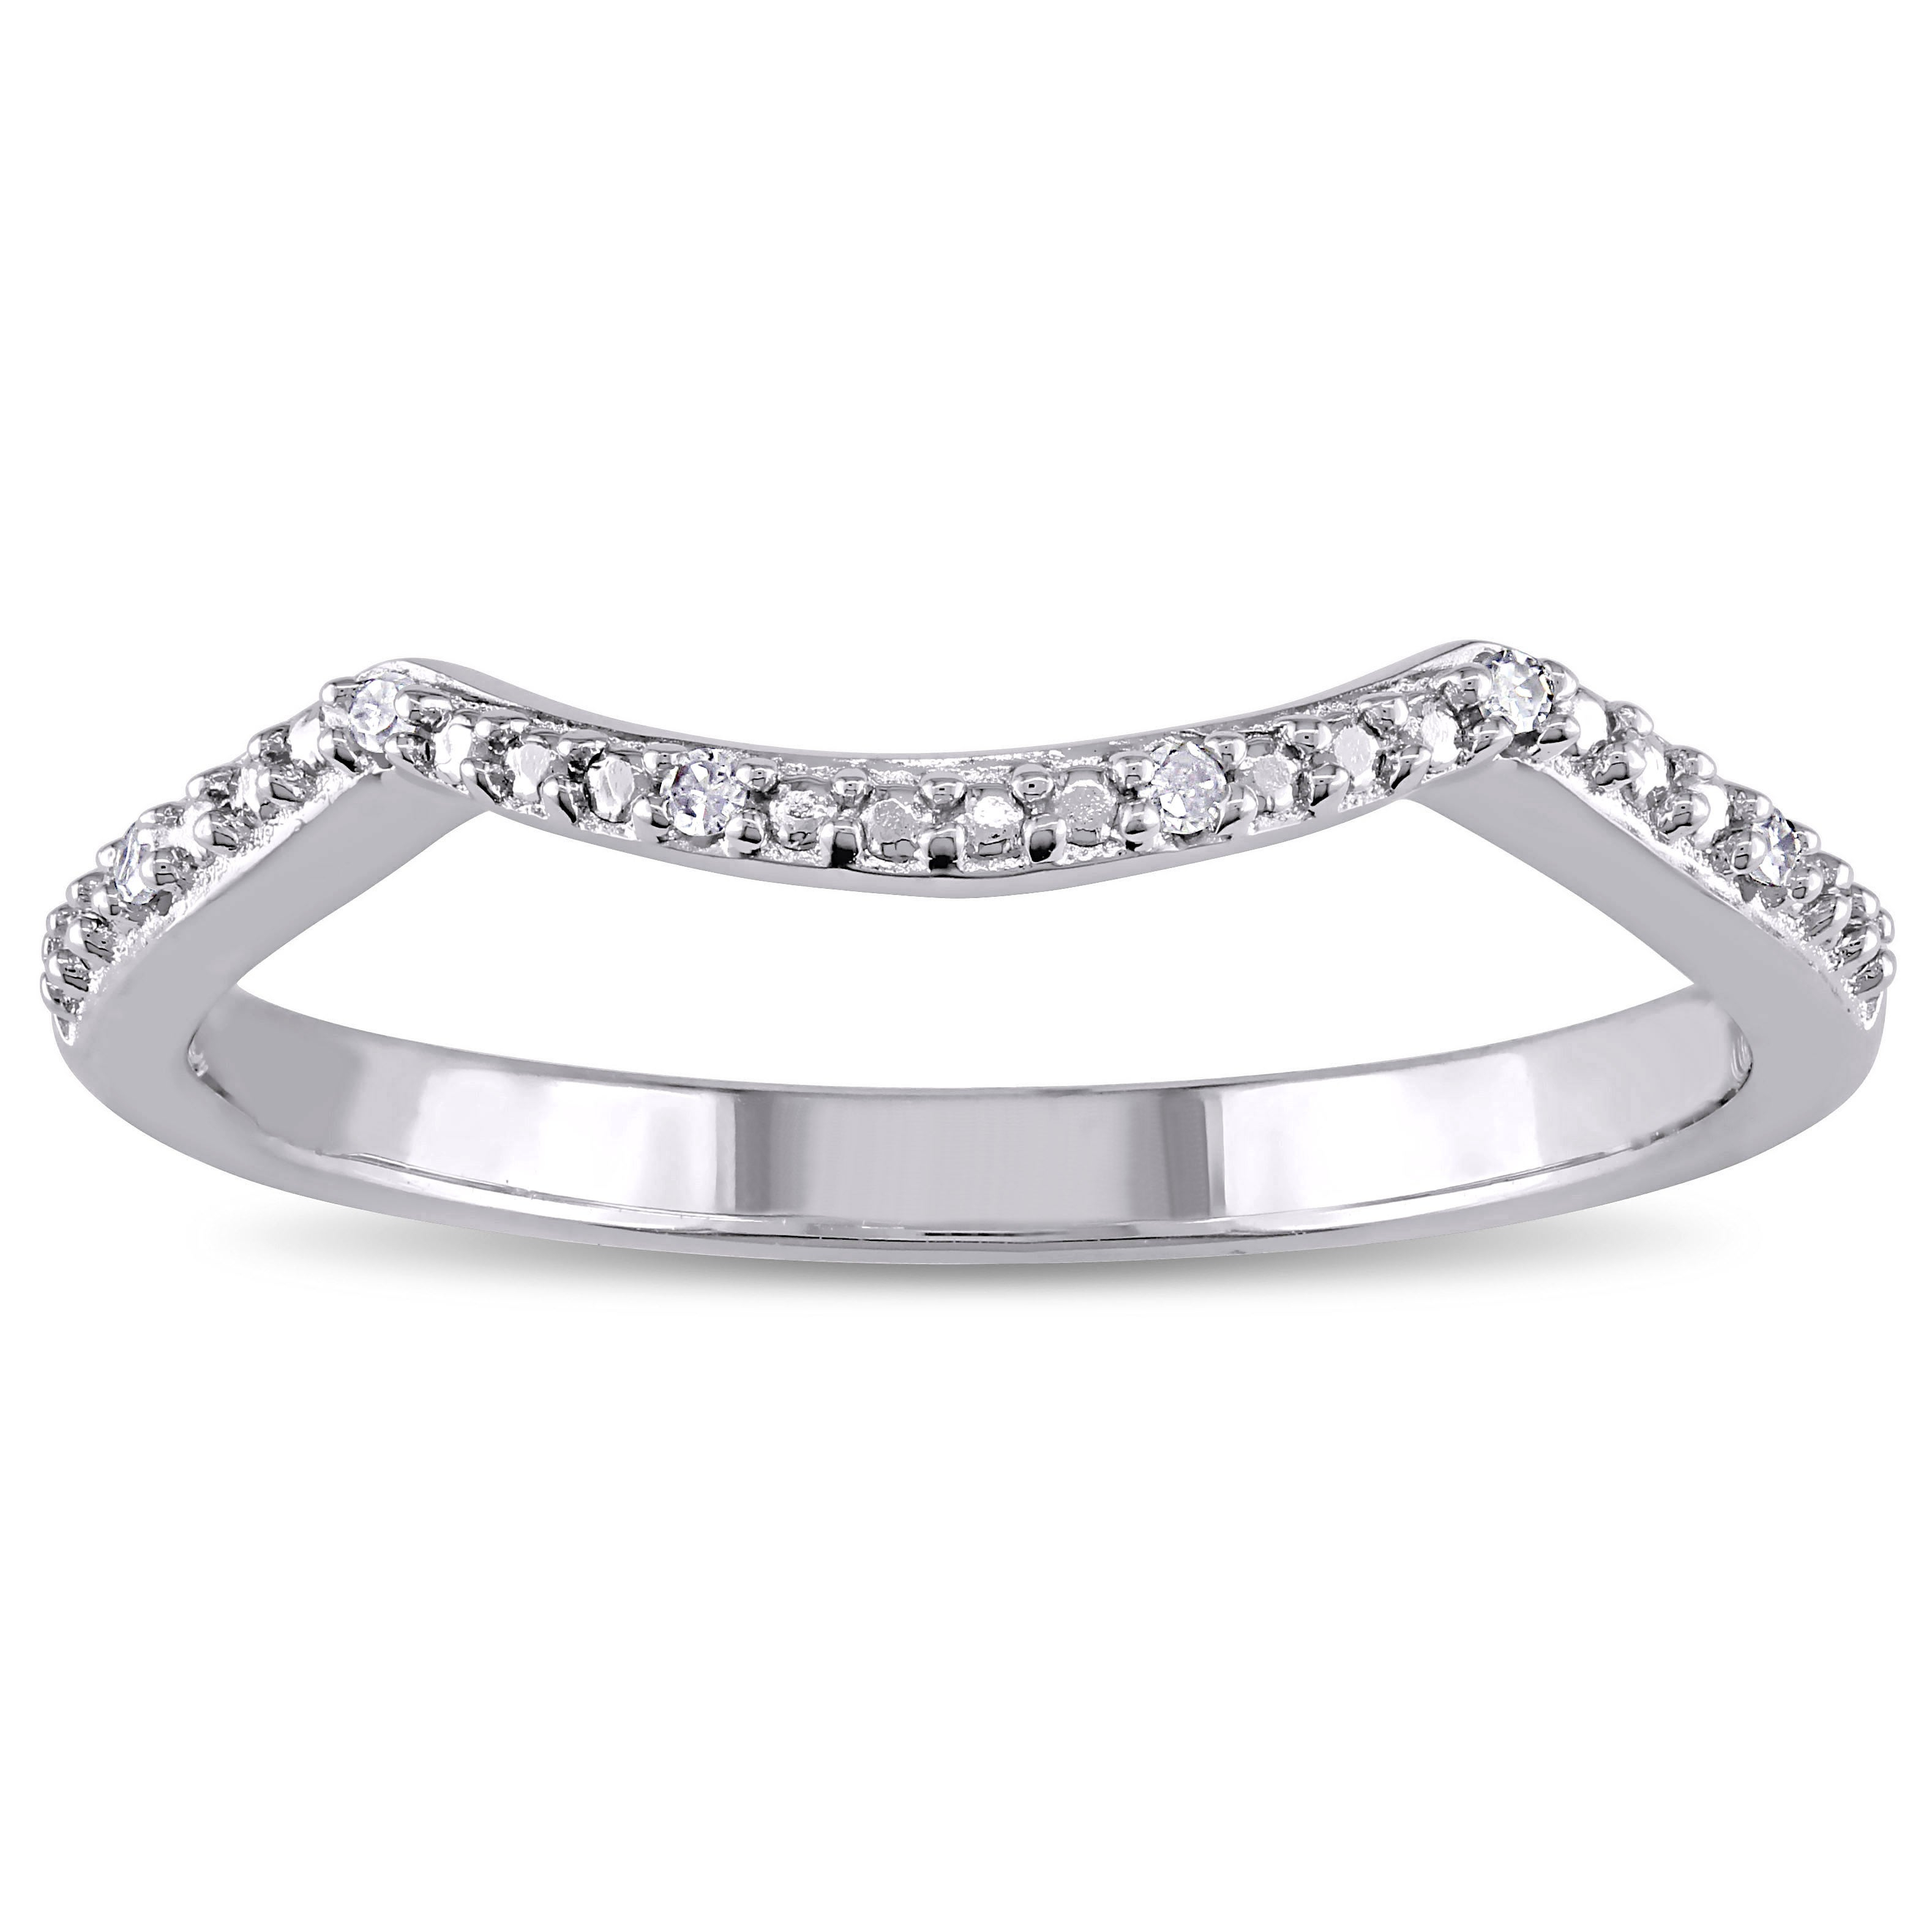 Miadora Sterling Silver Diamond Accent Contour Wedding Band Within Latest Diamond Accent Anniversary Bands In Sterling Silver (Gallery 3 of 25)